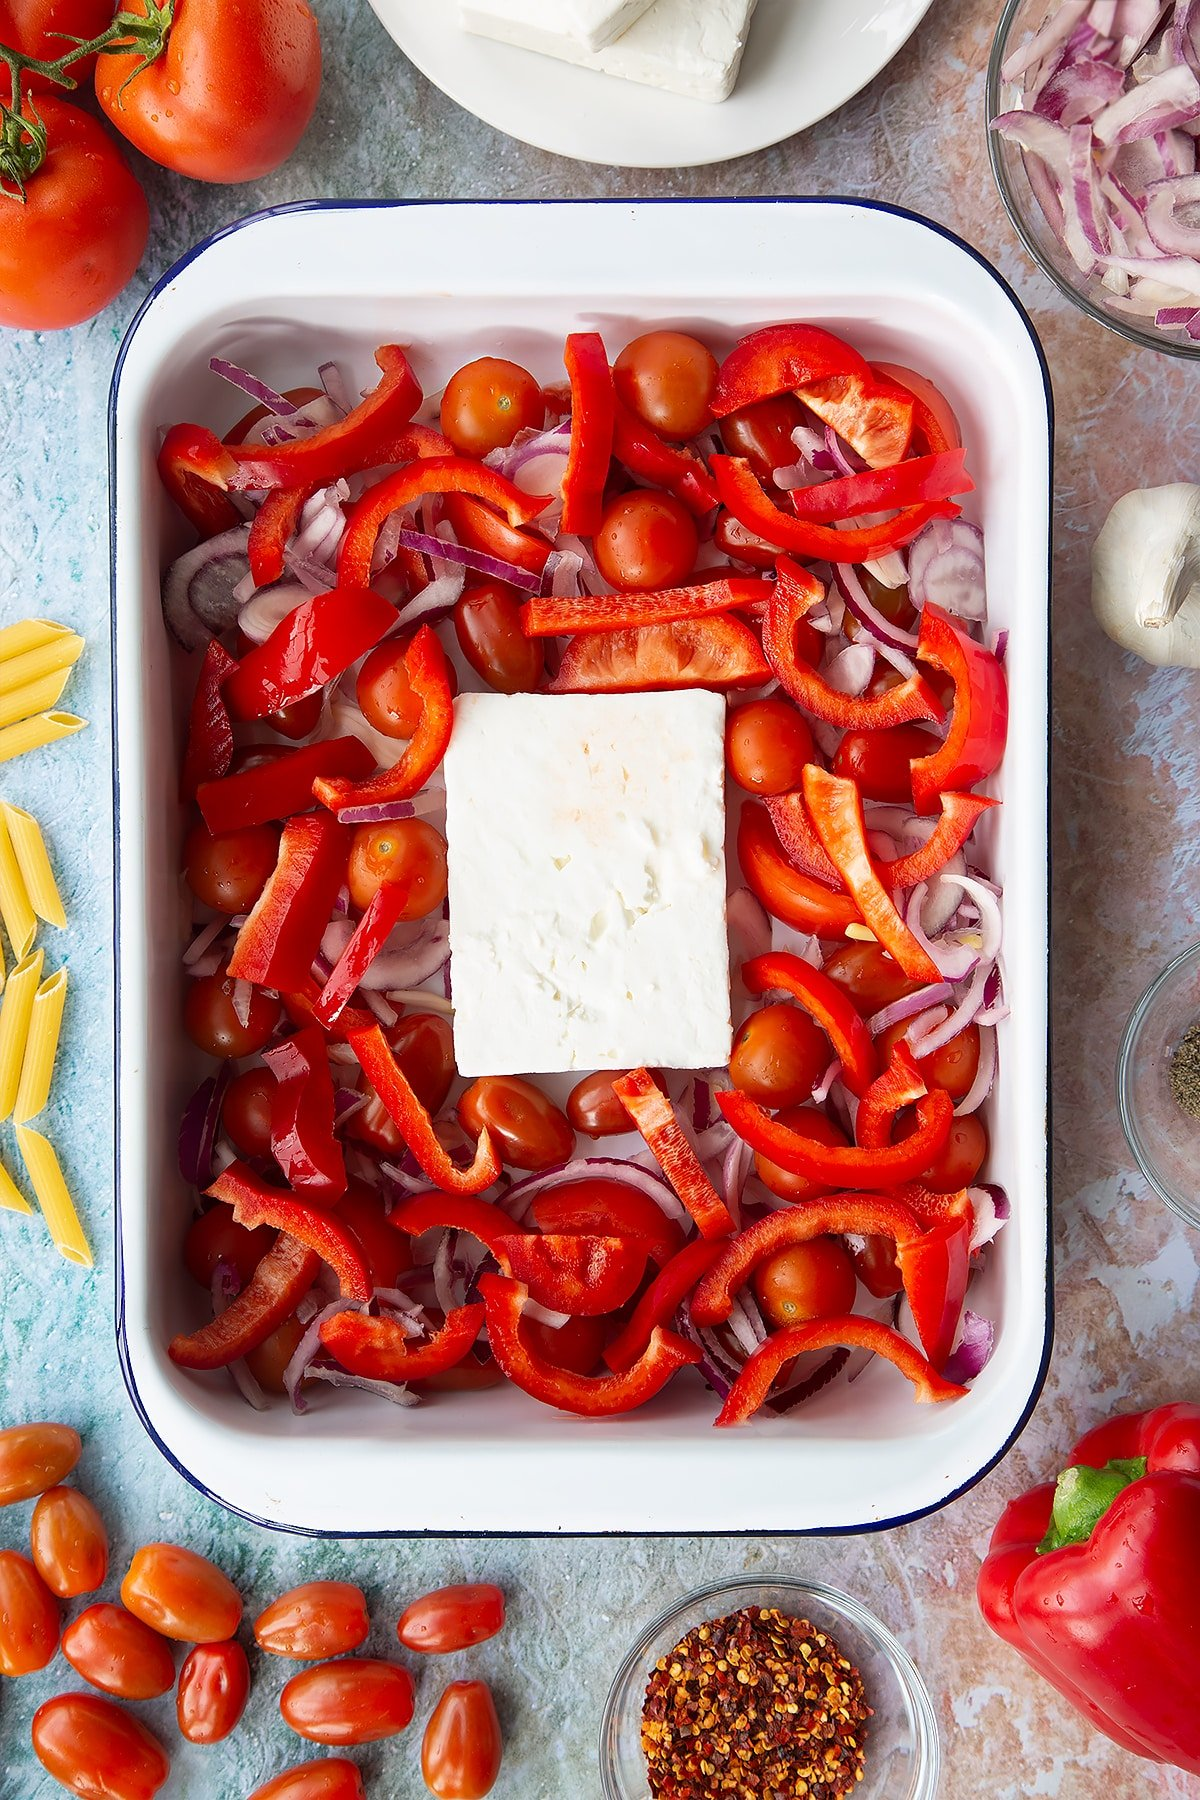 A block of feta surrounded by tomatoes, red pepper and red onion slices in a large white roasting tray. Ingredients to make baked feta pasta surround the tray.